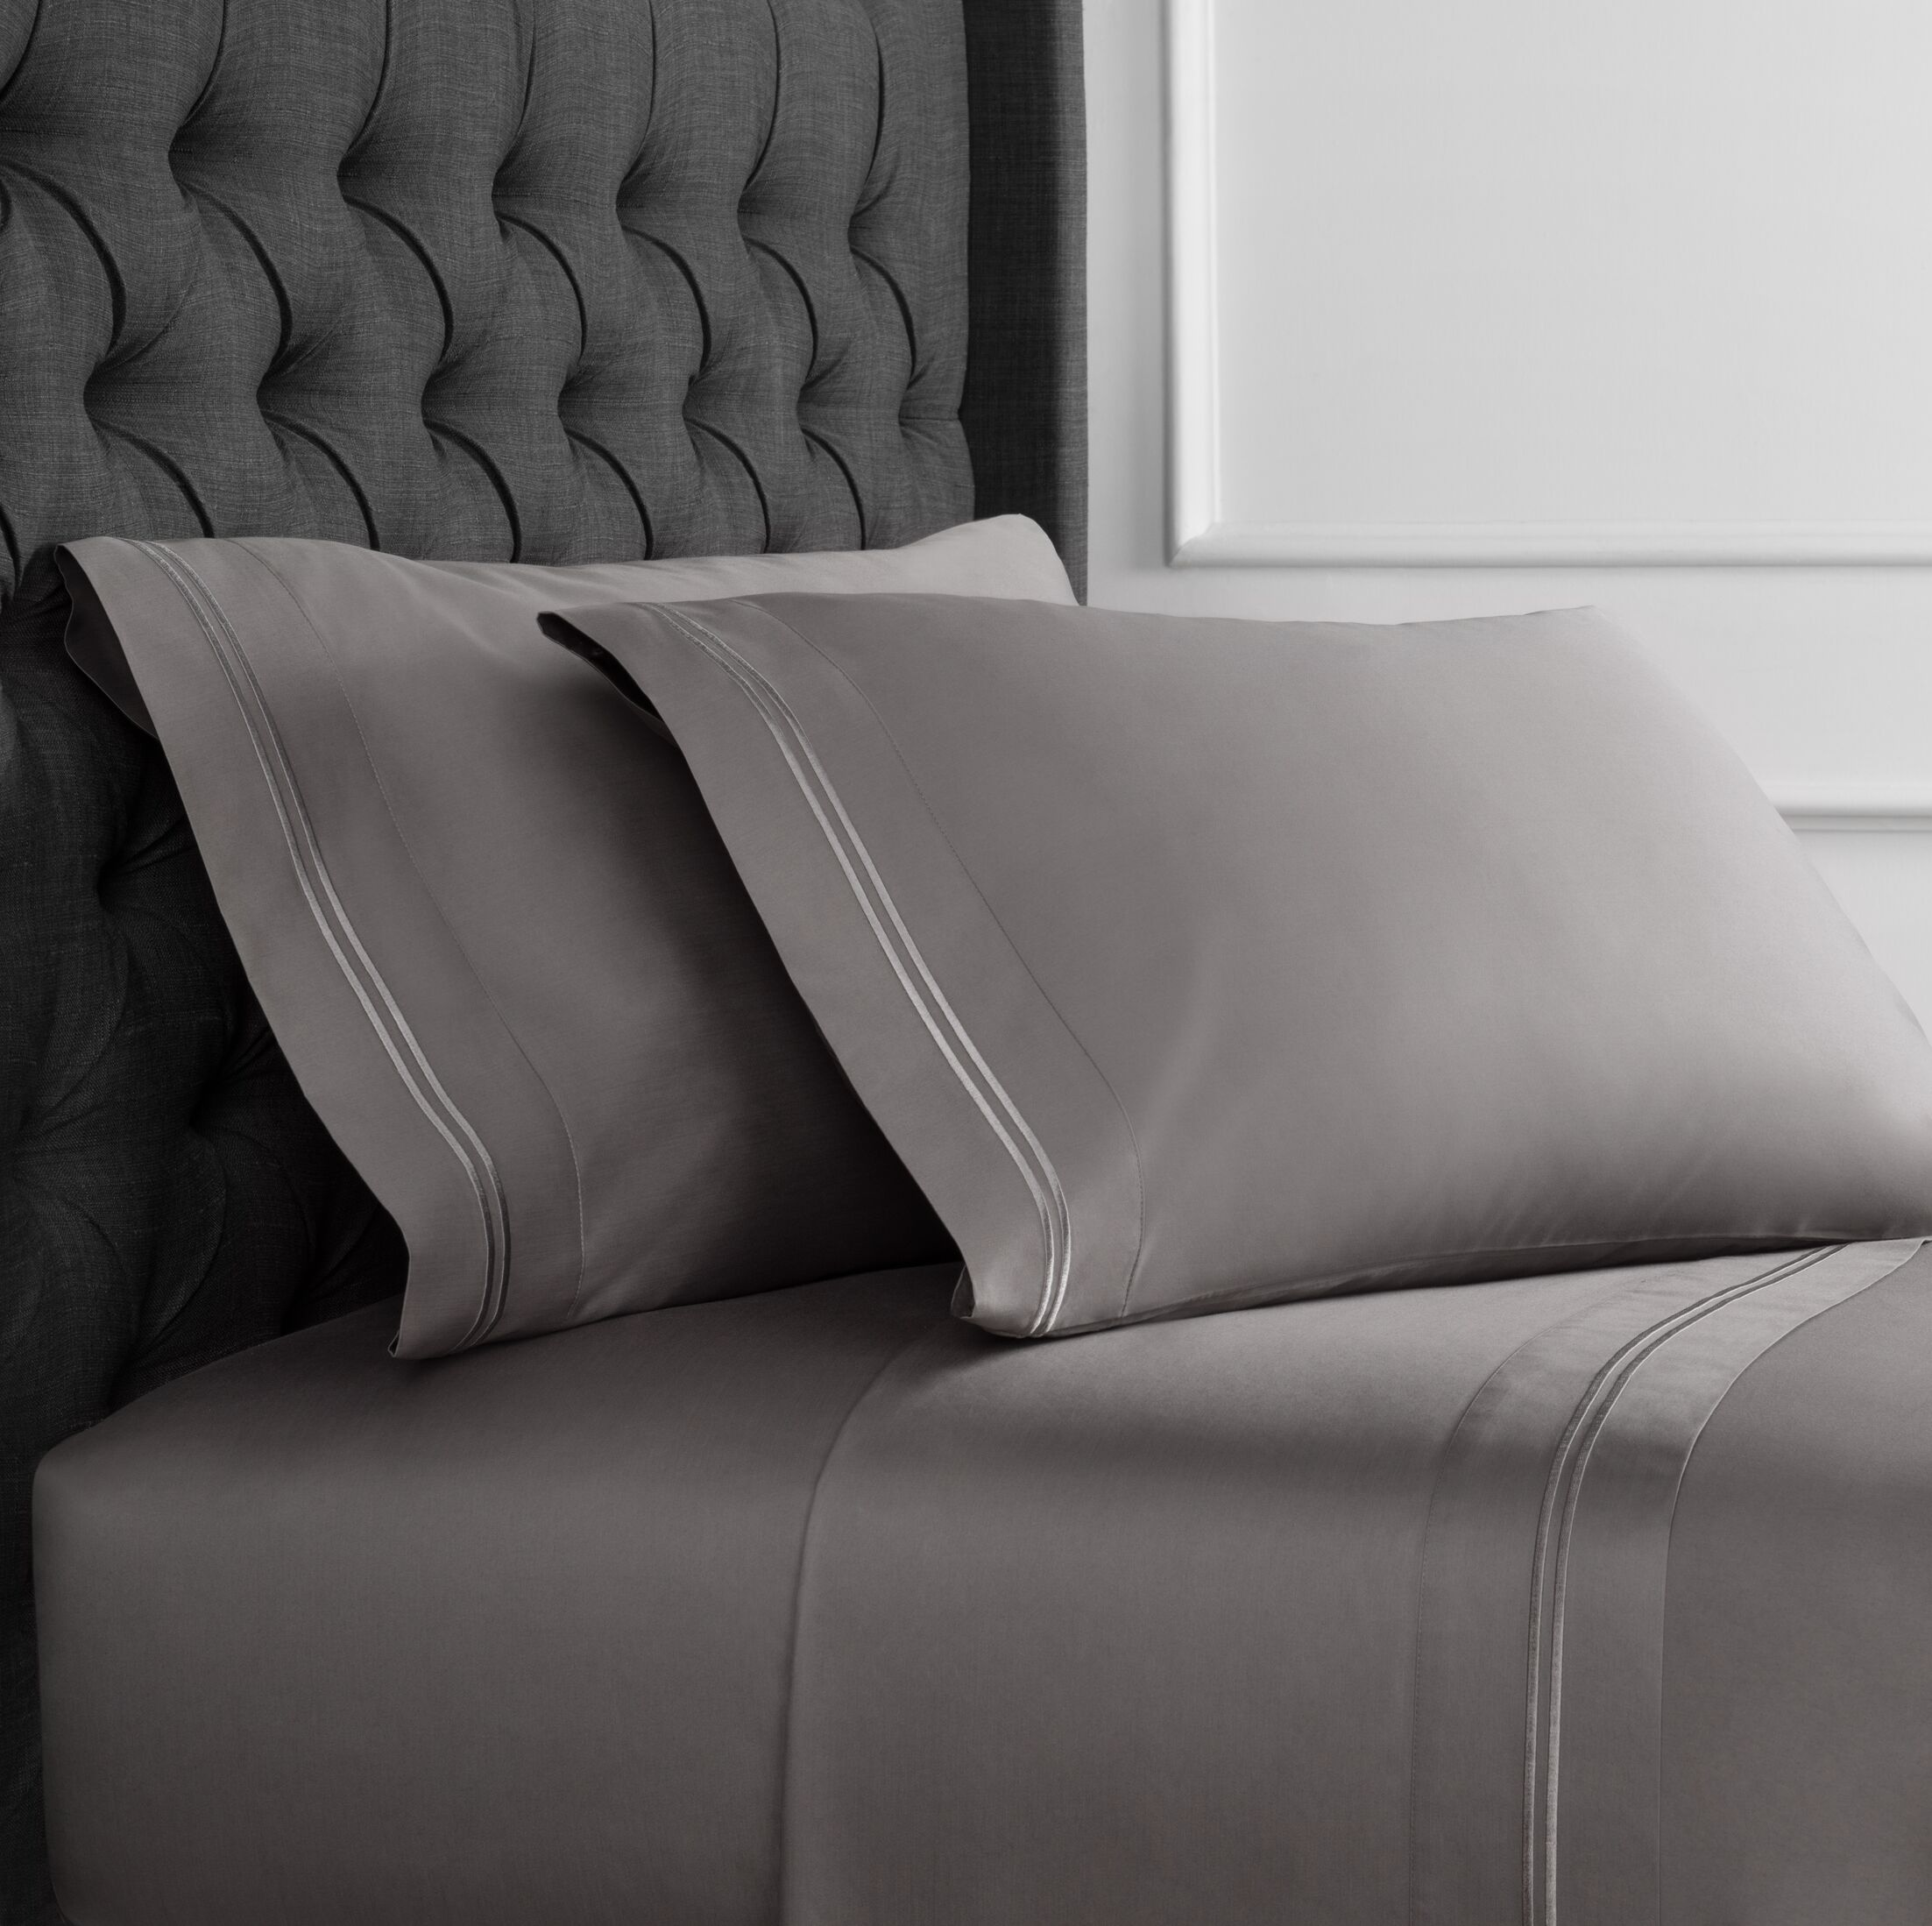 Crose Border Embroidered 600 Thread Count 100% Cotton Sheet Set Size: Twin, Color: Charcoal